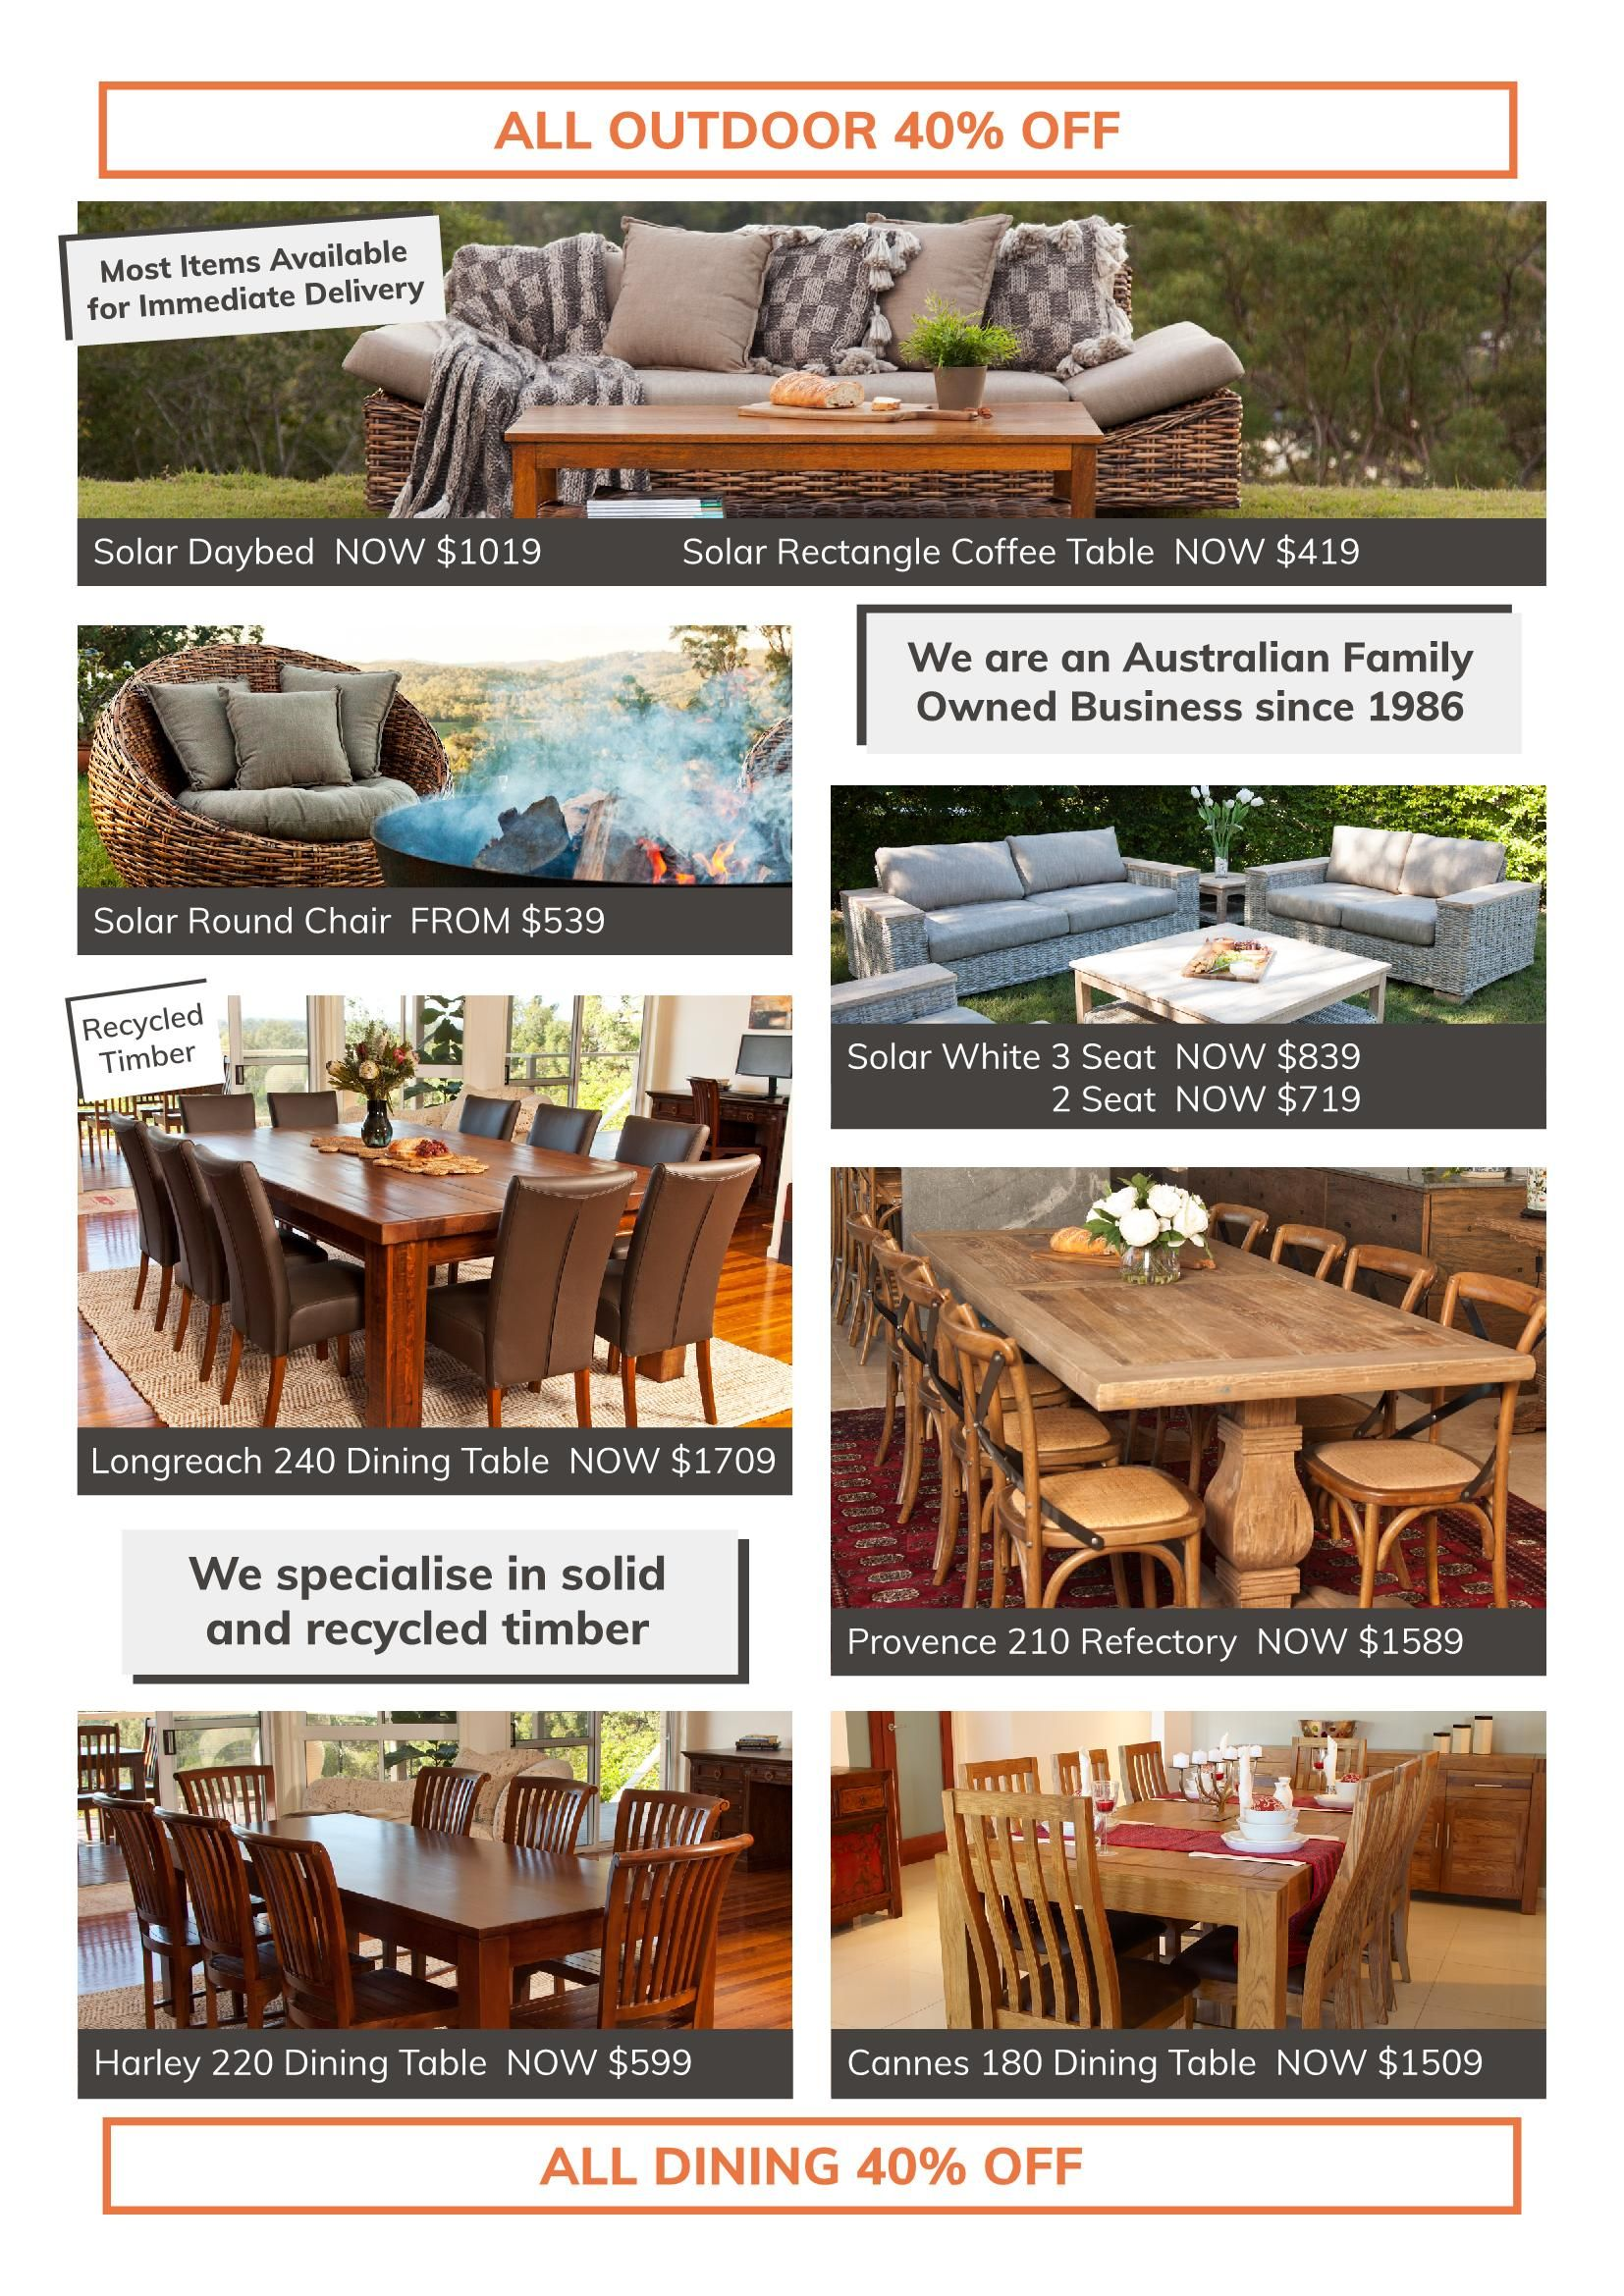 Eureka Street Furniture Townsville Summer Sale On Now - Outdoor Furniture Clearance Townsville